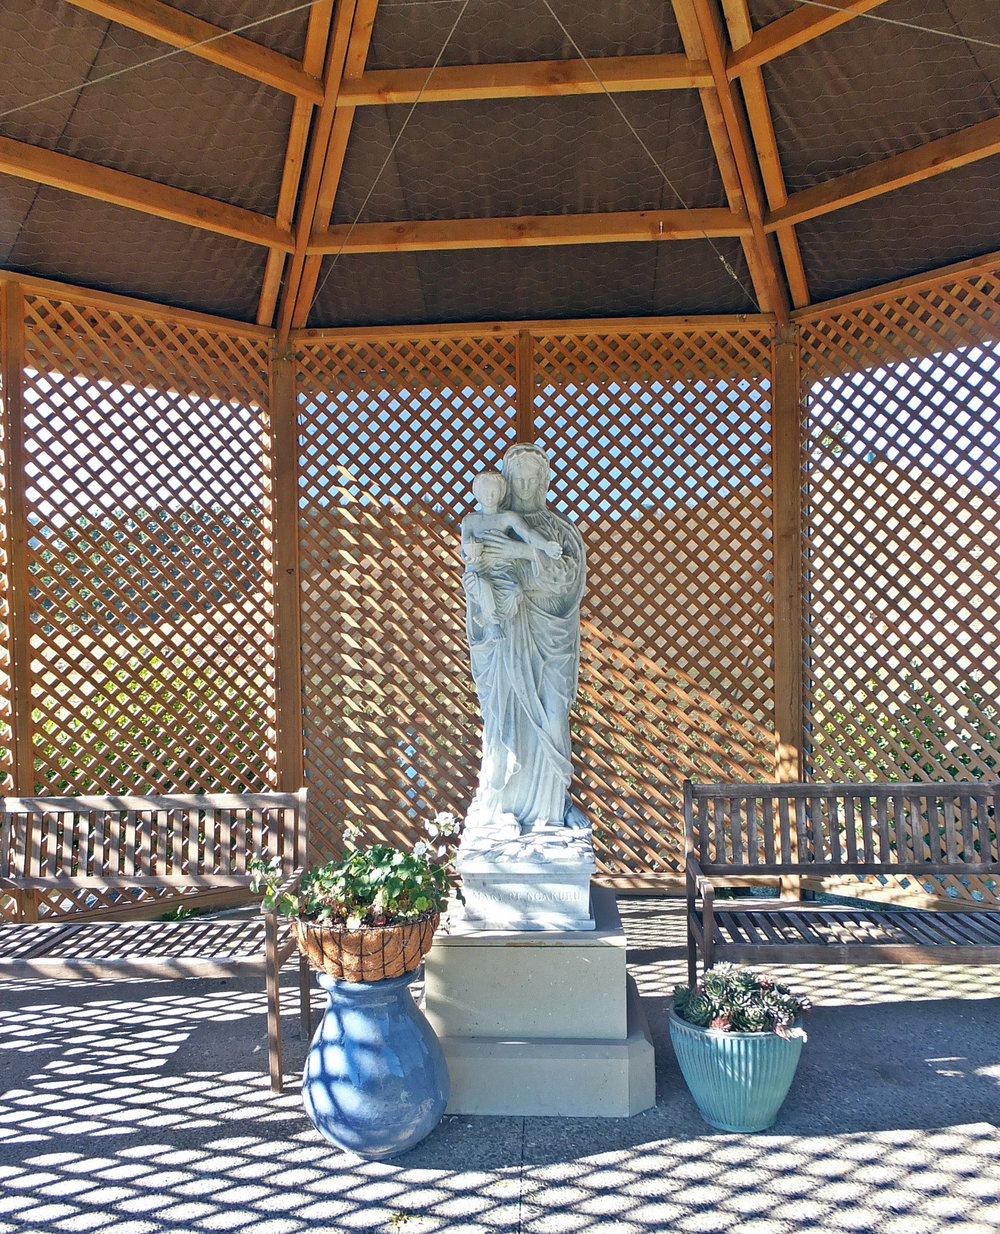 Our Lady of Ngakuru in her shrine at the Monastery